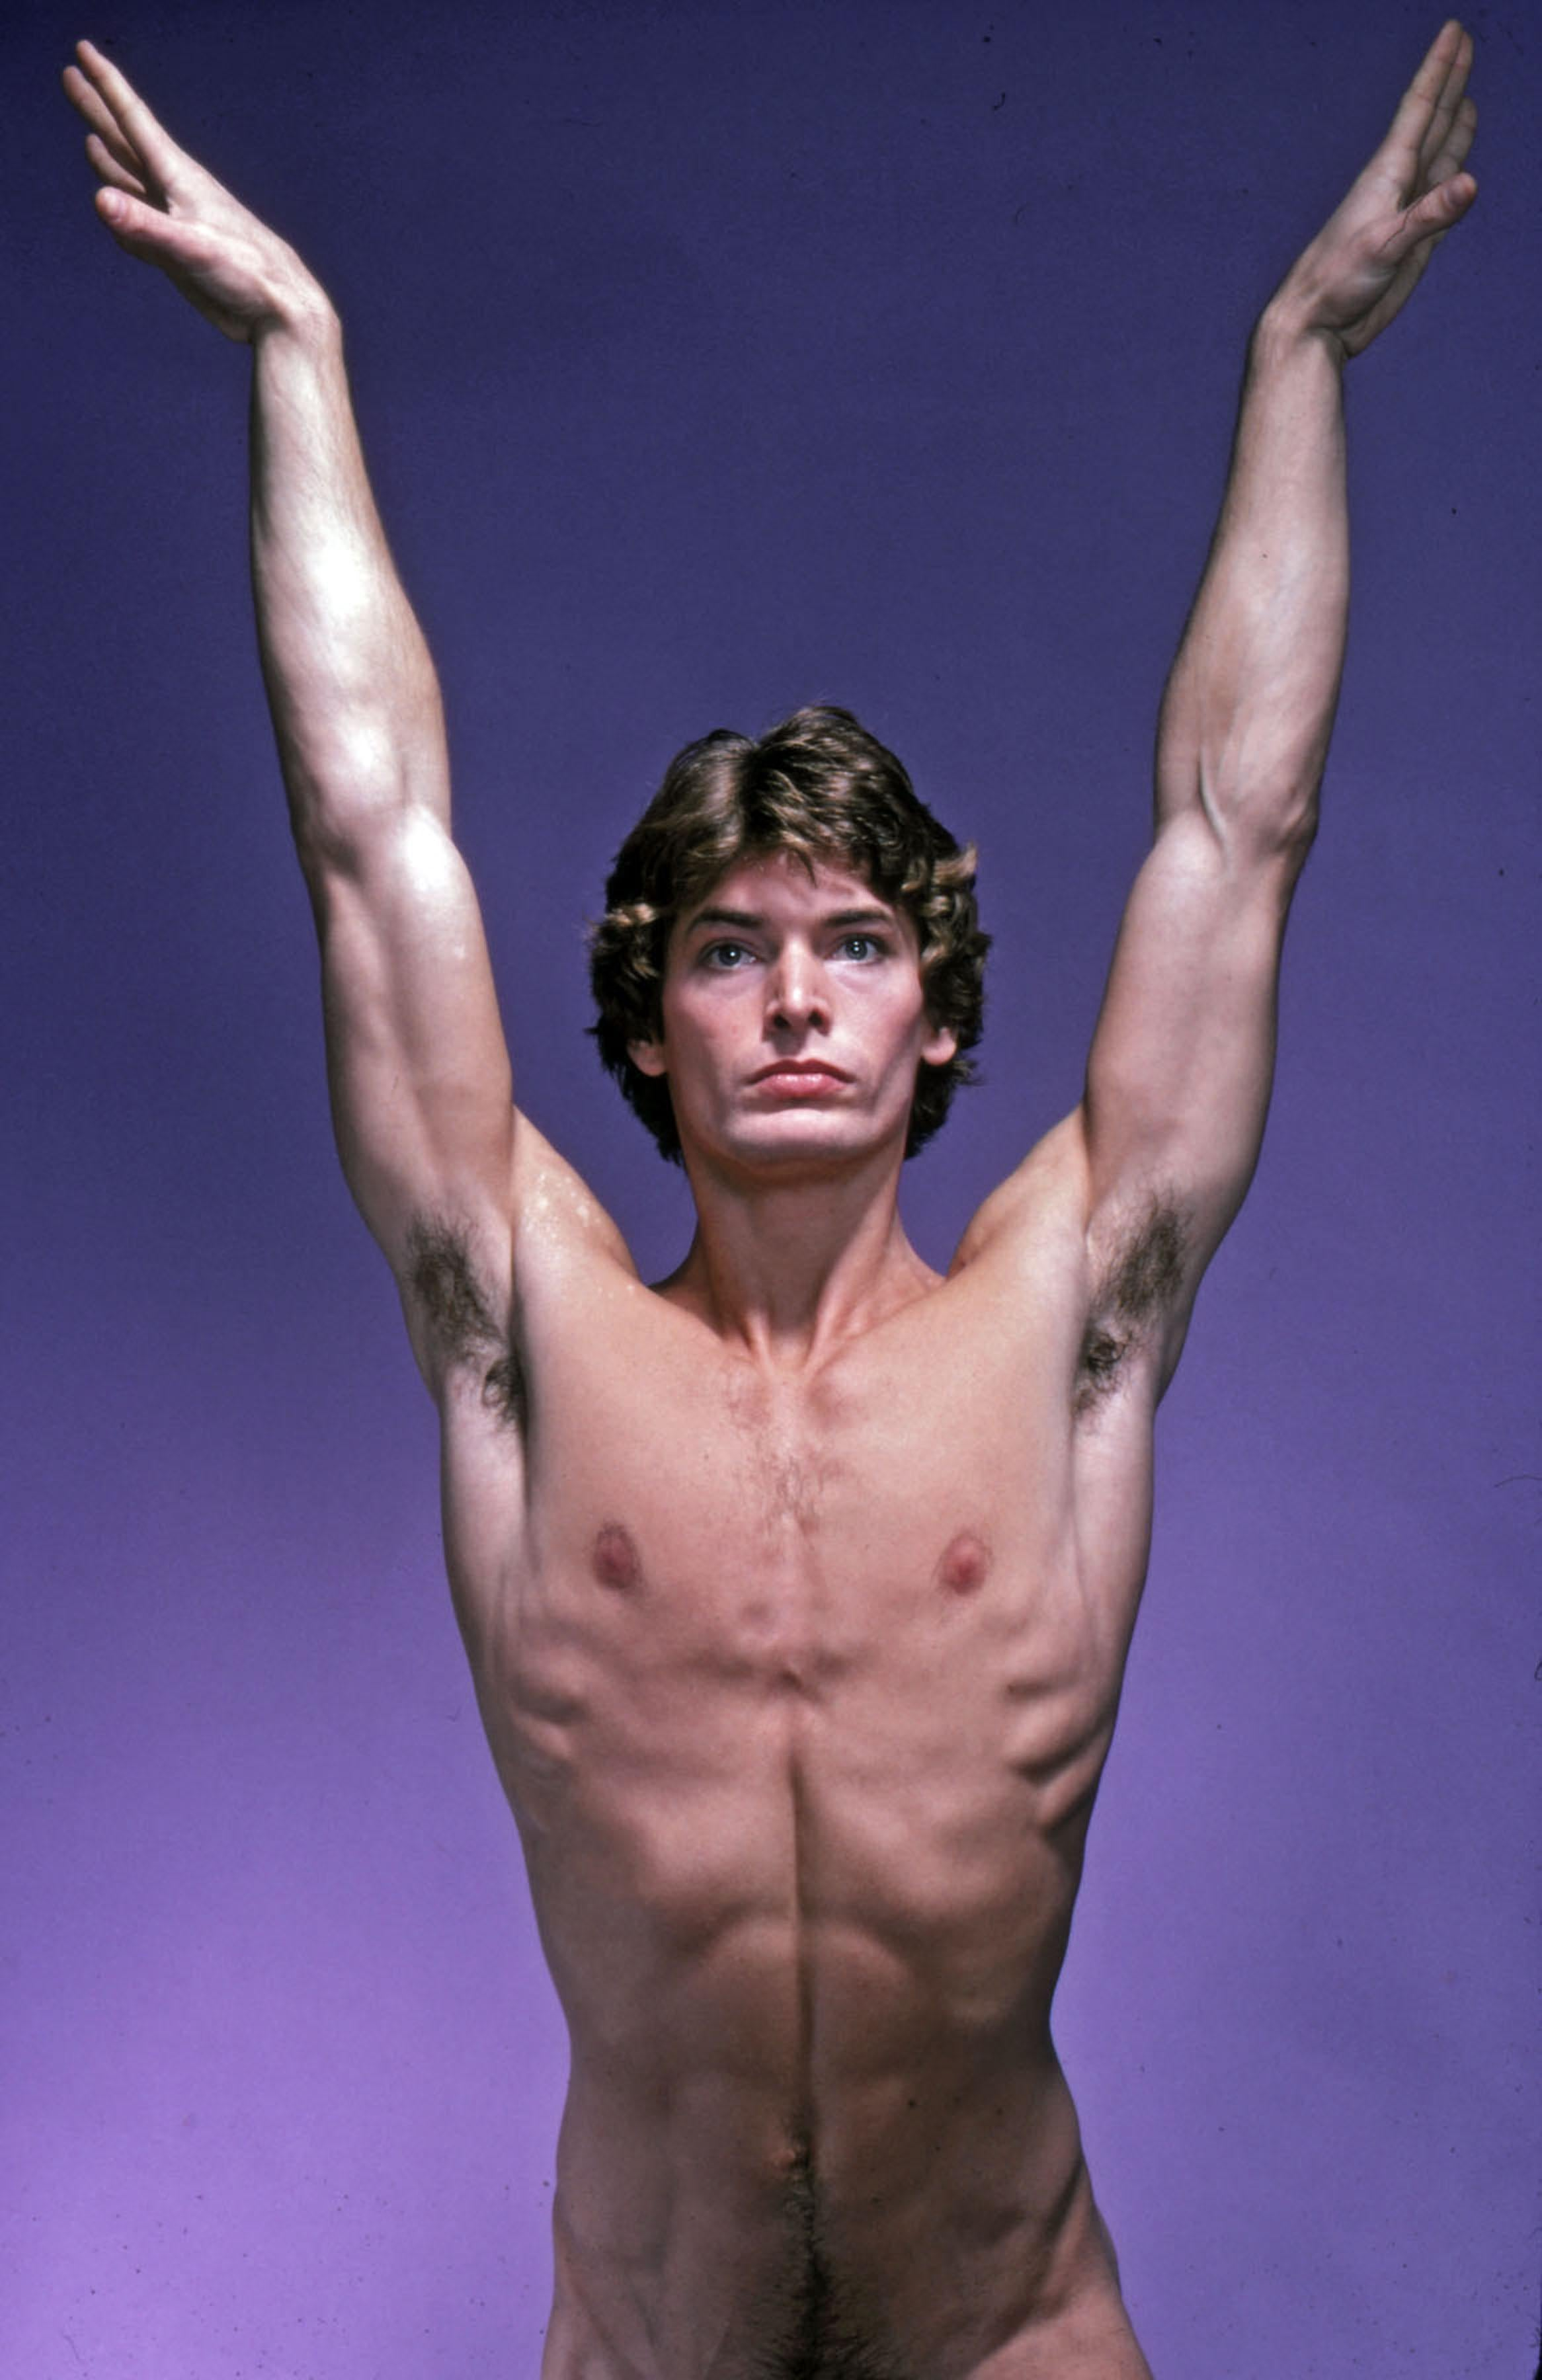 Model Mark Hammond, nude, signed by Jack Mitchell